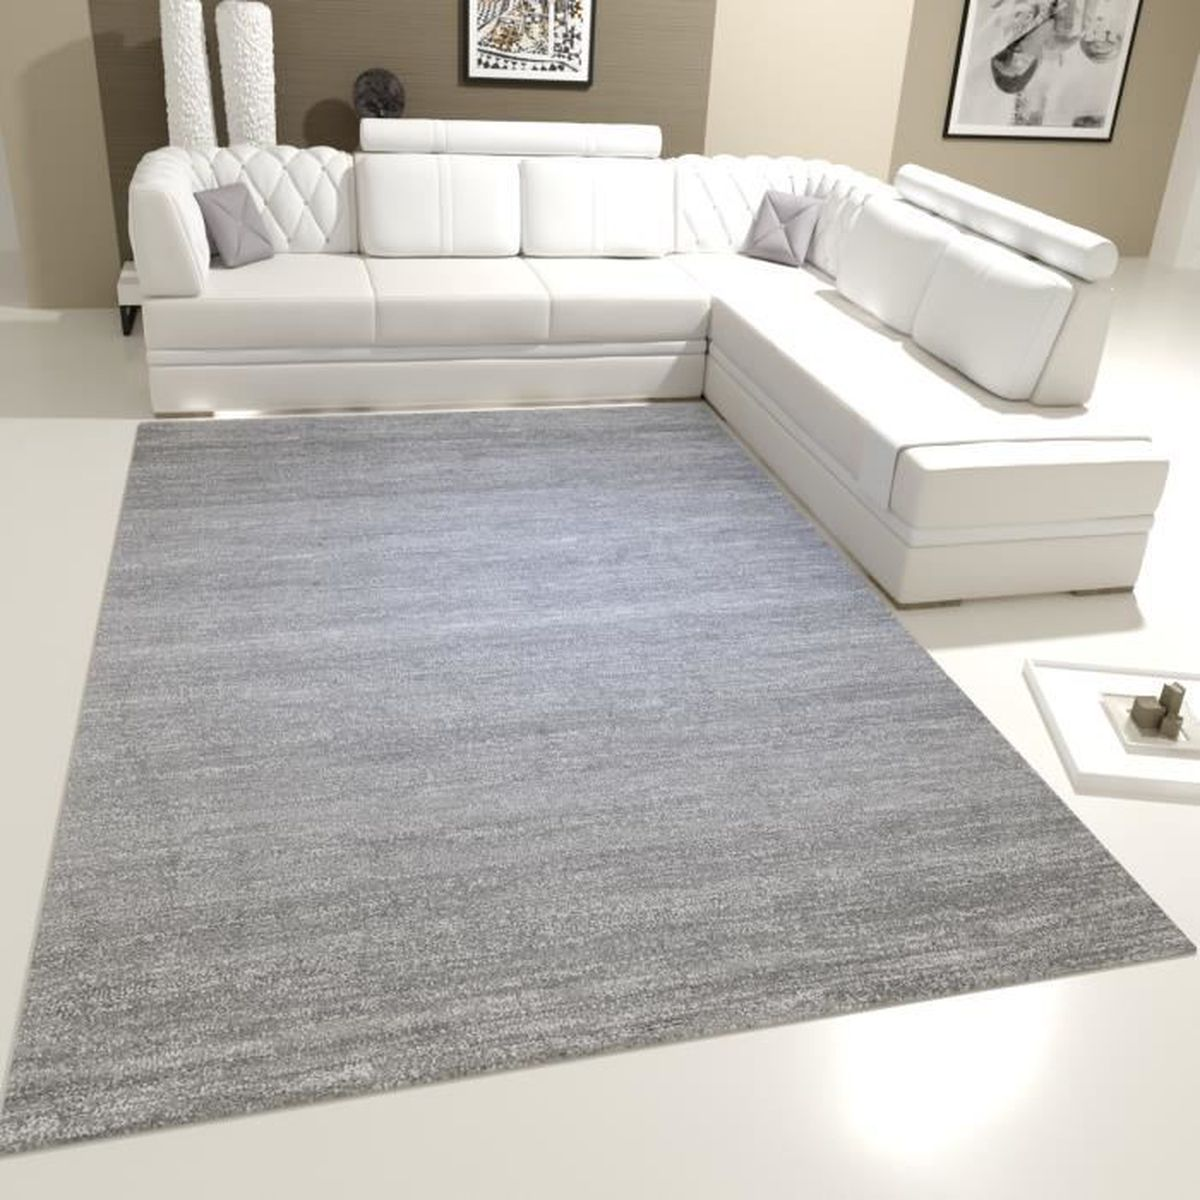 tapis de salon gris blanc achat vente tapis de salon gris blanc pas cher cdiscount. Black Bedroom Furniture Sets. Home Design Ideas